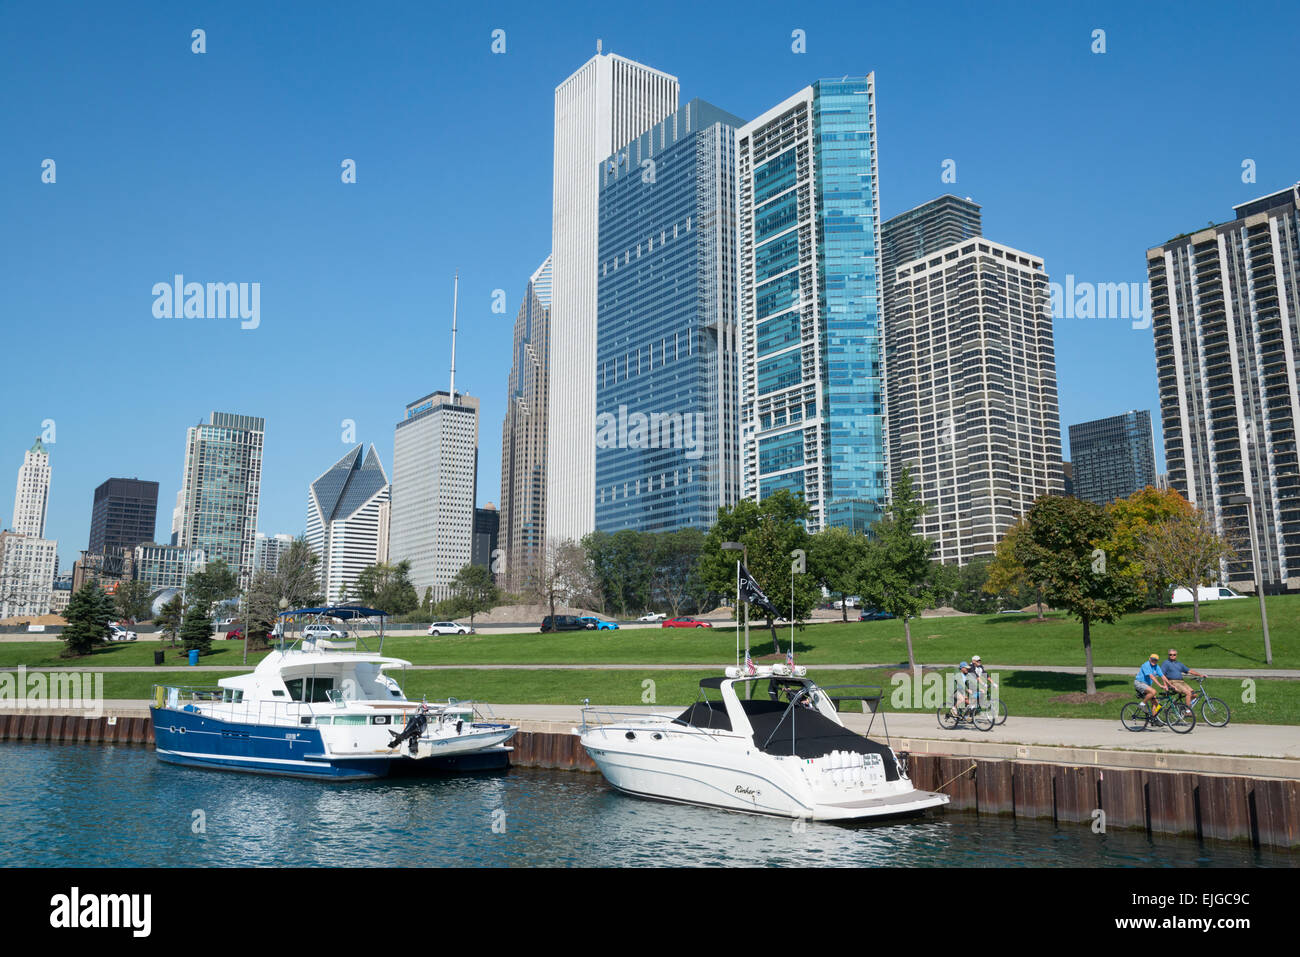 Lakefront. Downtown Chicago. Illinois. USA. - Stock Image